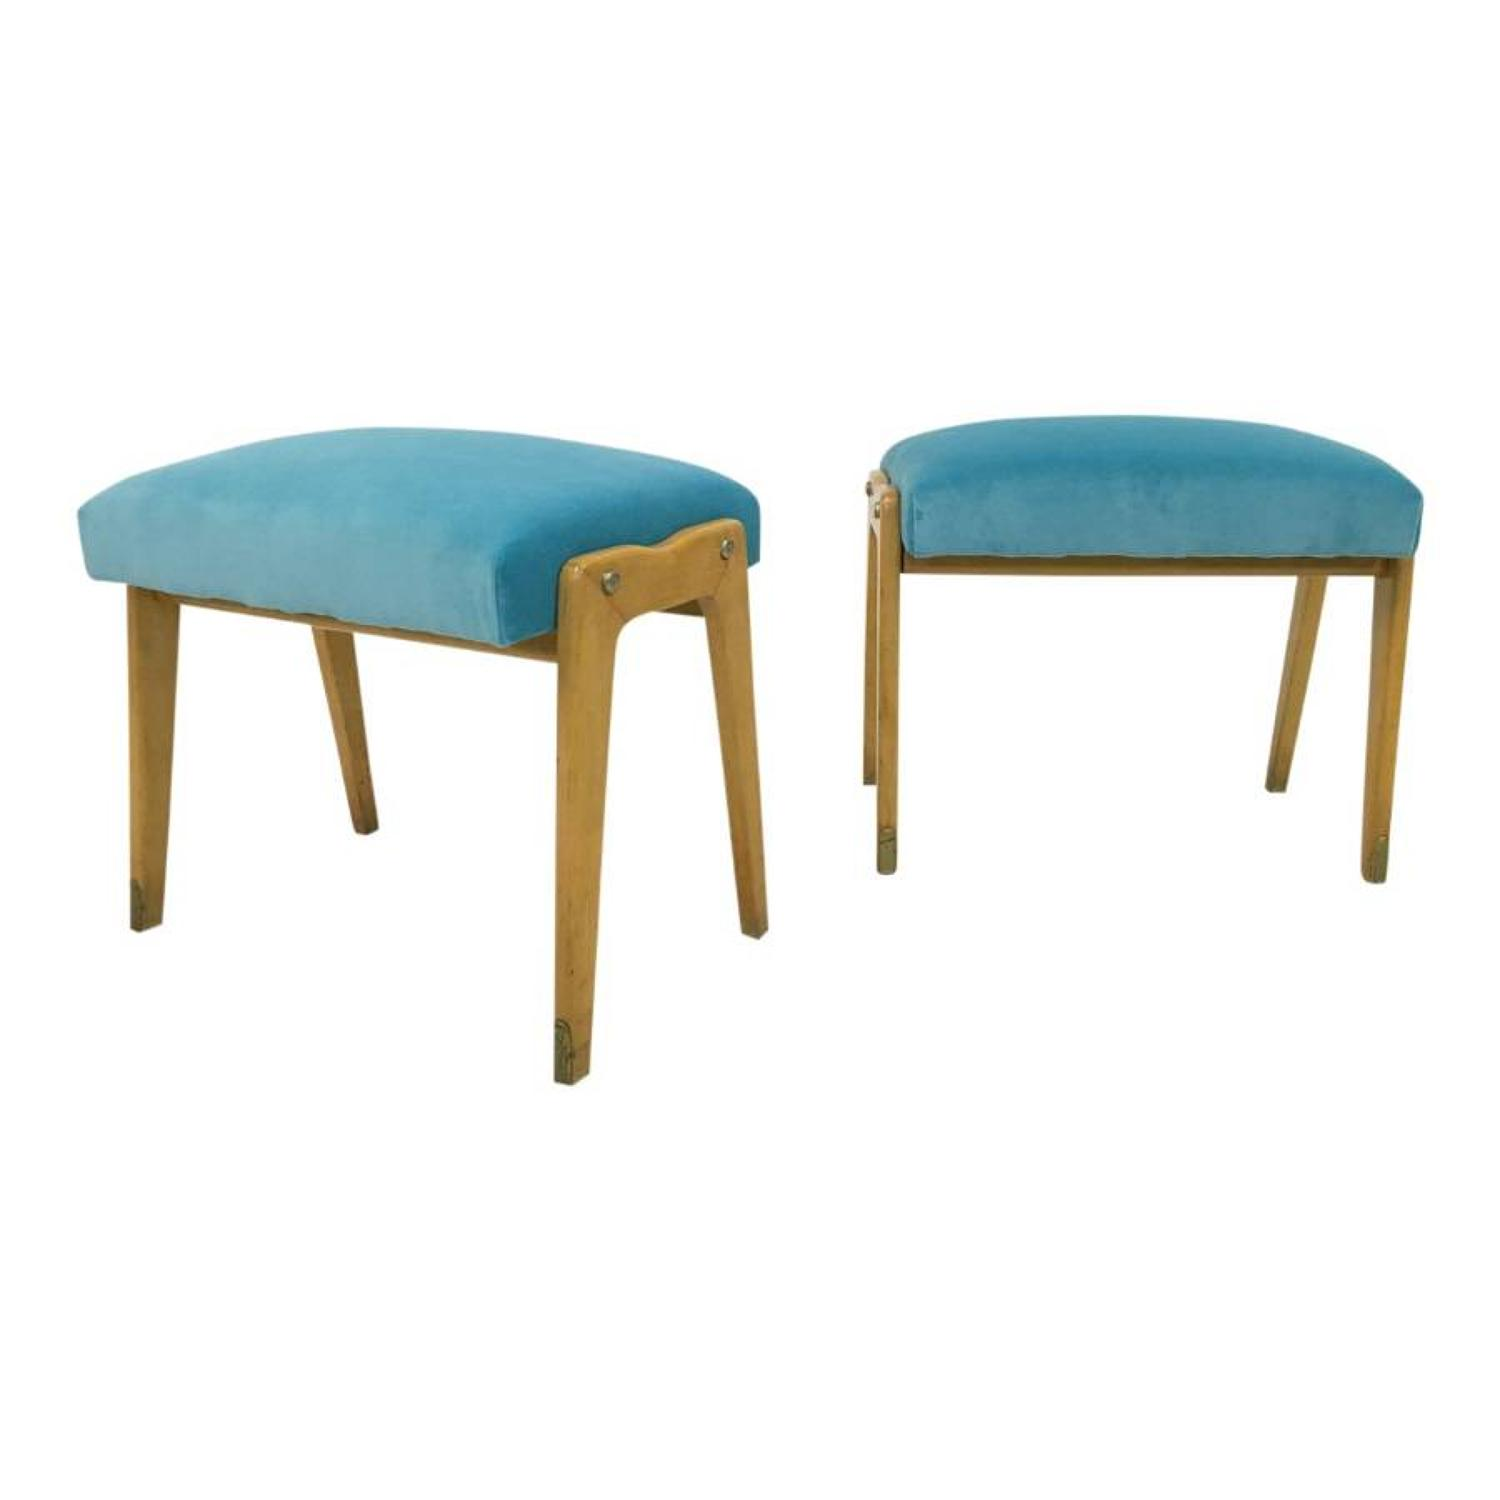 A pair of 1950s Italian stools in blue velvet